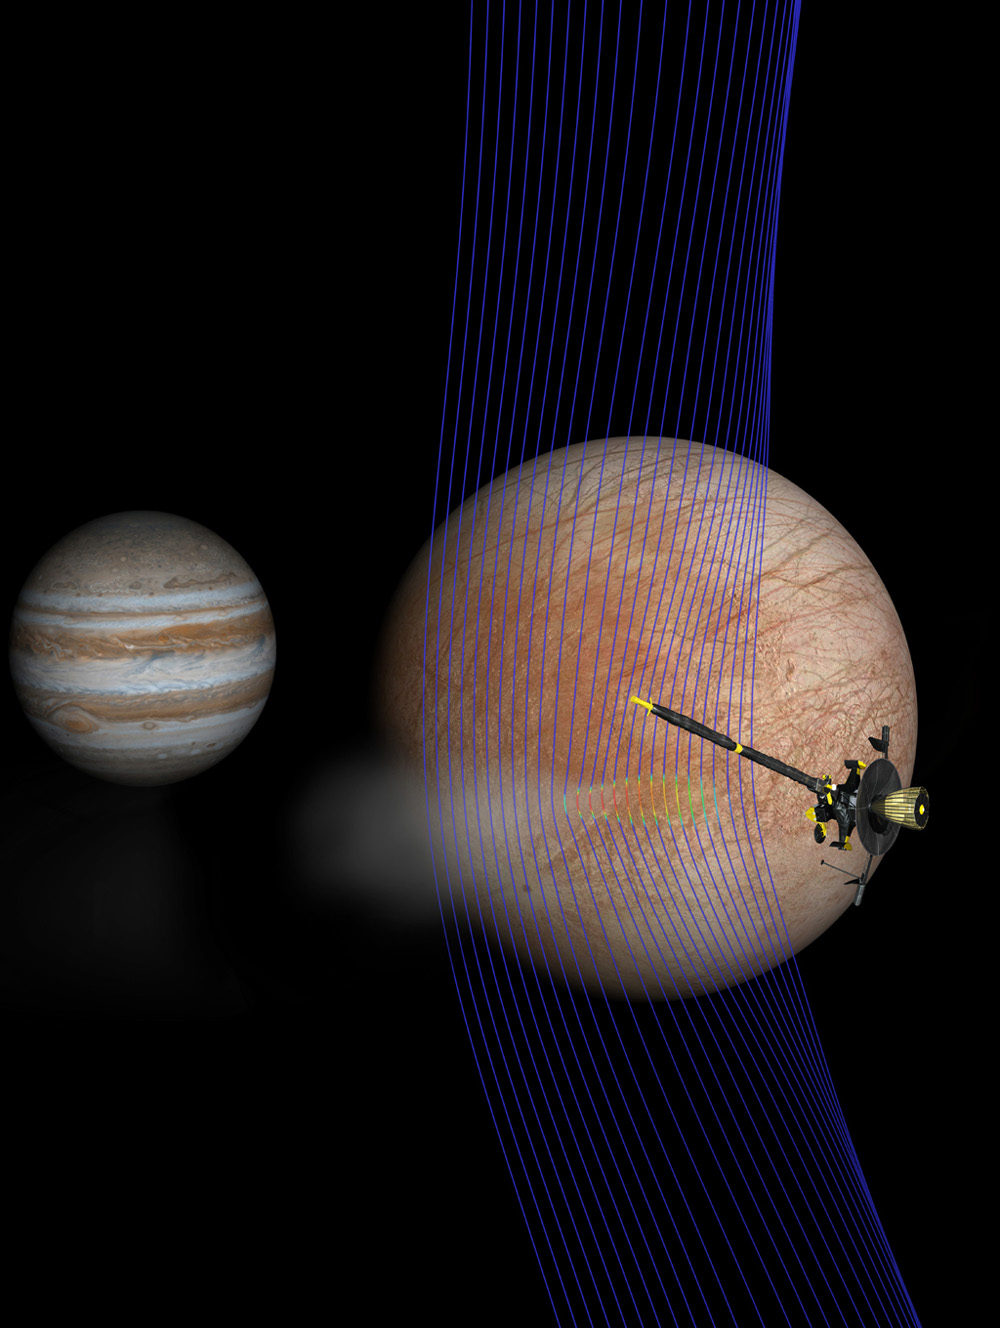 Artist's illustration of Jupiter and Europa (in the foreground) with the Galileo spacecraft after its pass through a plume erupting from Europa's surface.